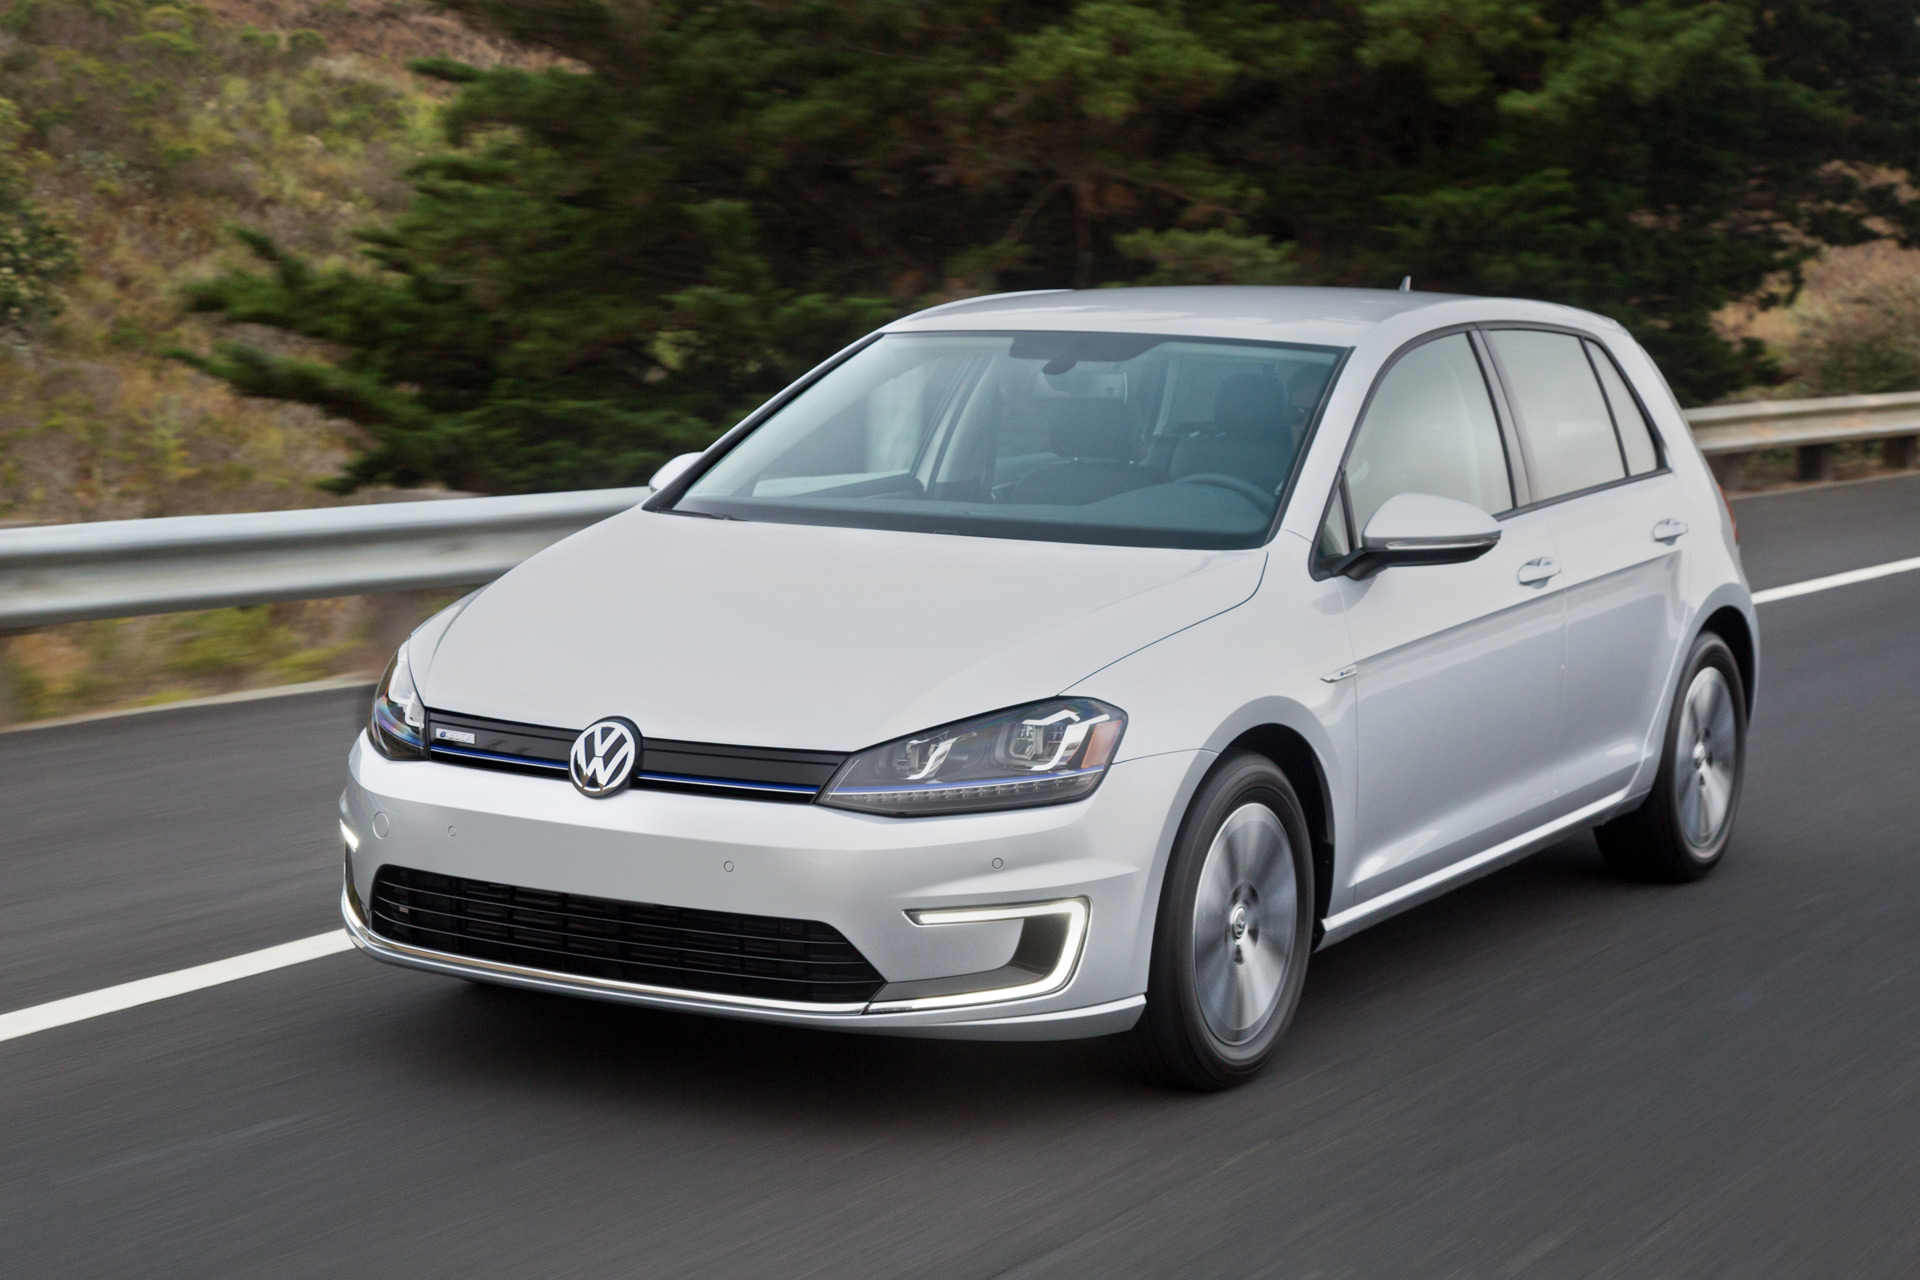 2016 Volkswagen E-golf #9